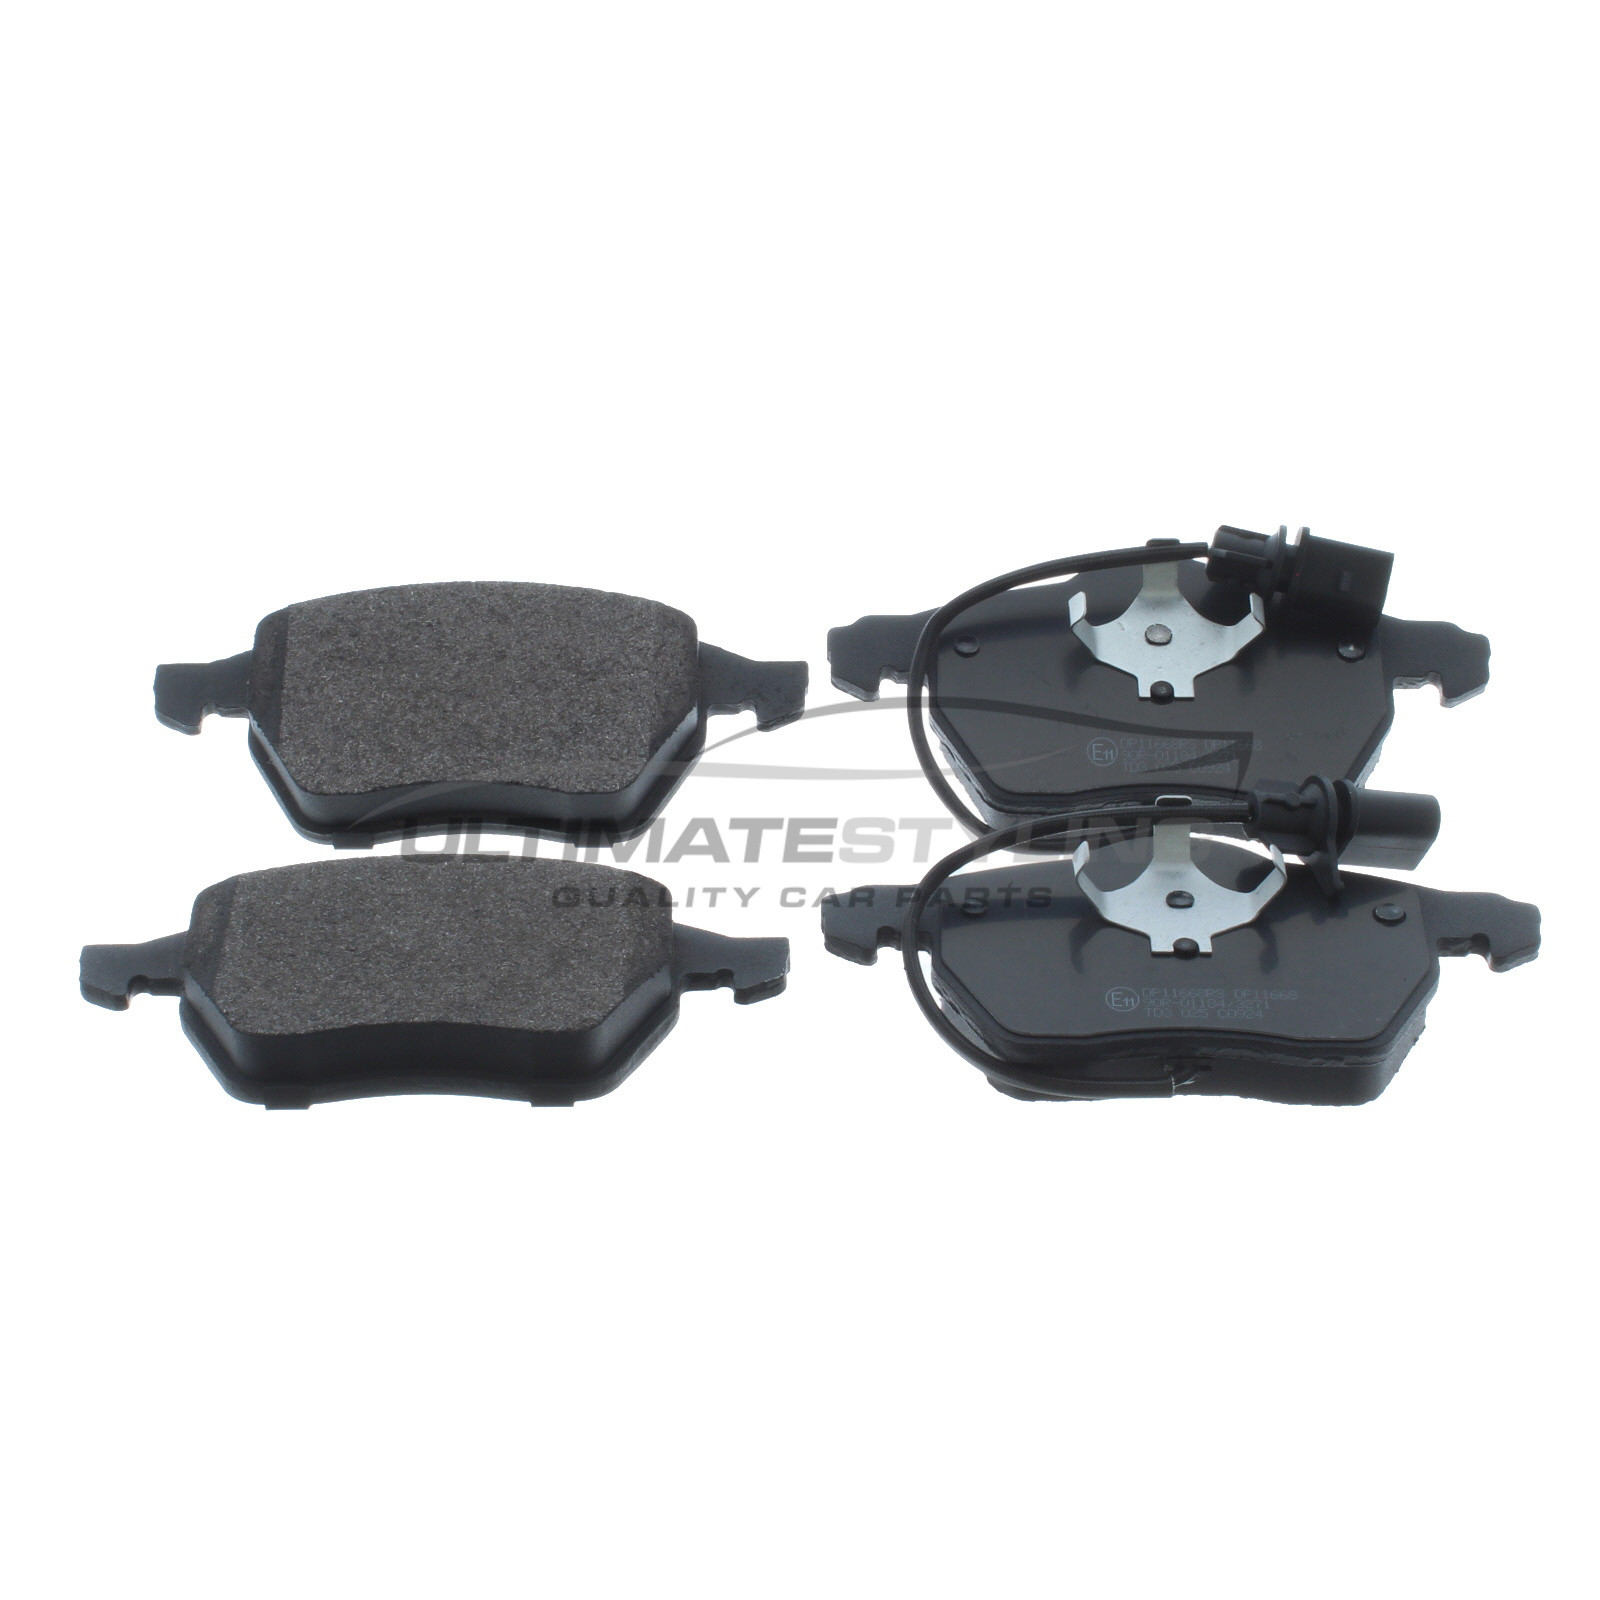 Brake Pads for Audi A6